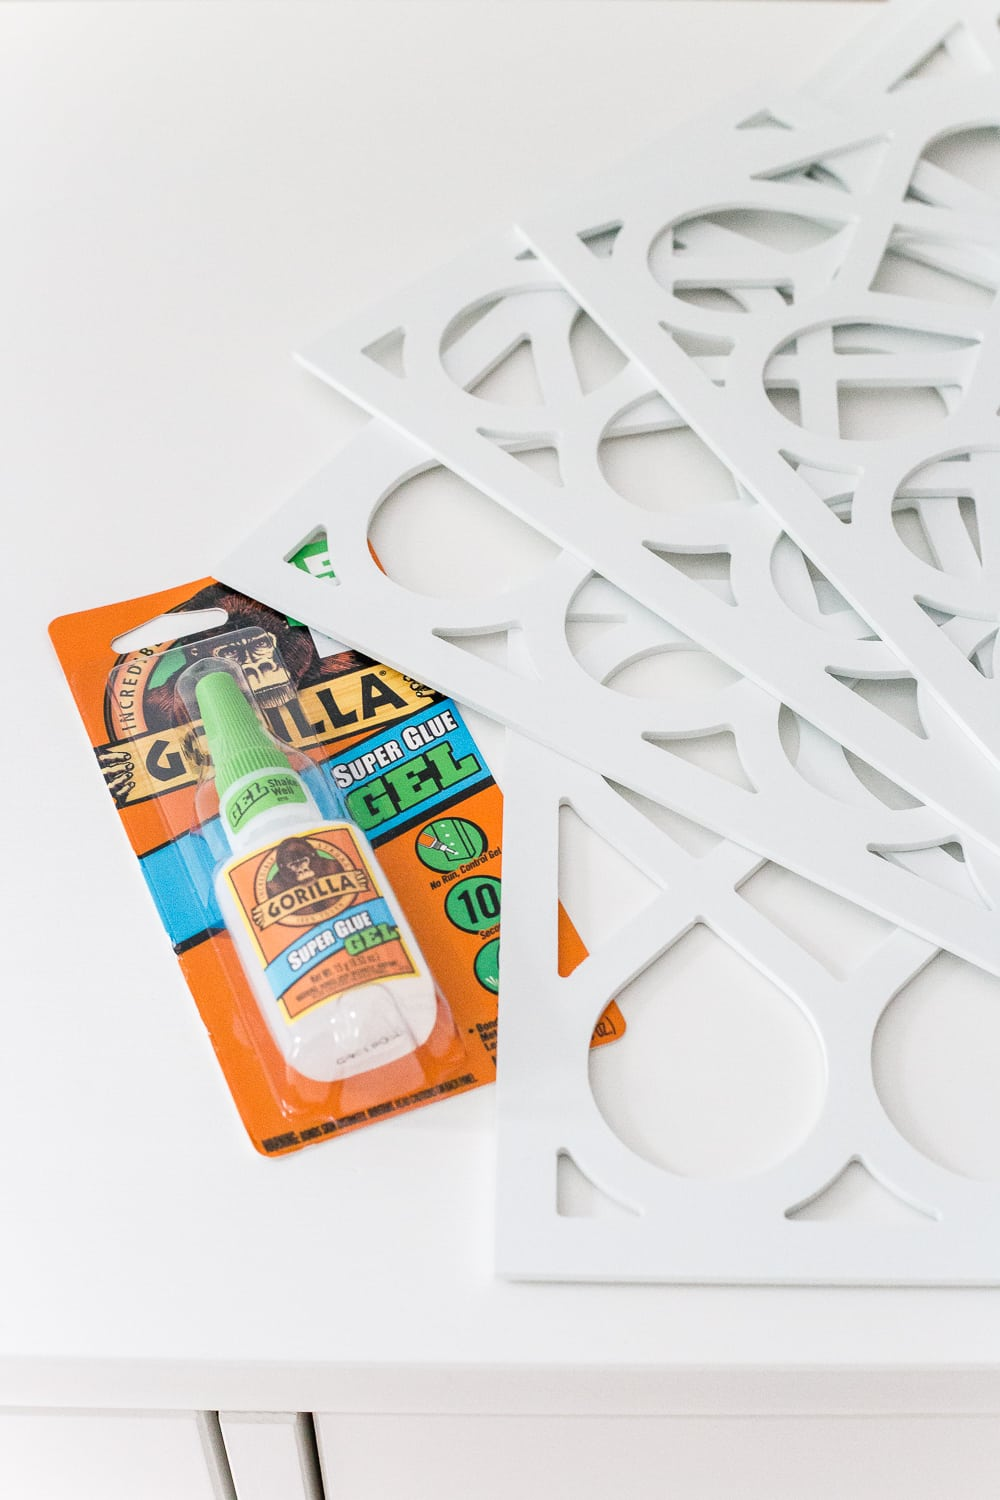 How to add O'verlays appliques to a plain IKEA dresser